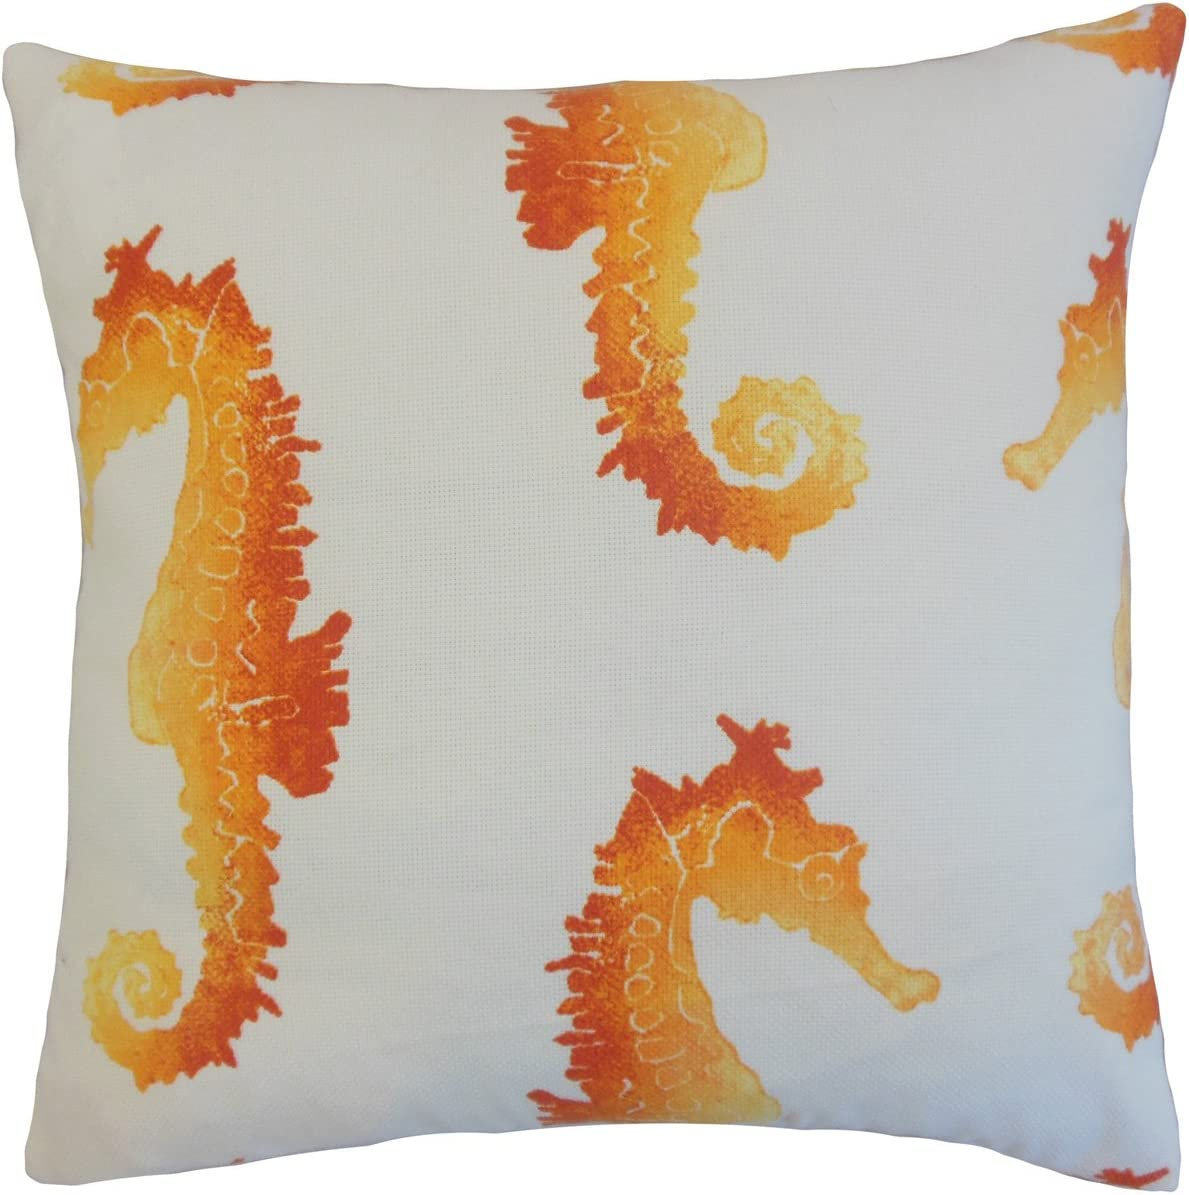 The Pillow Collection Xenos Outdoor Bedding Sham Tangerine King//20 x 36 KING-FT-29021-TANGERINE-OUT